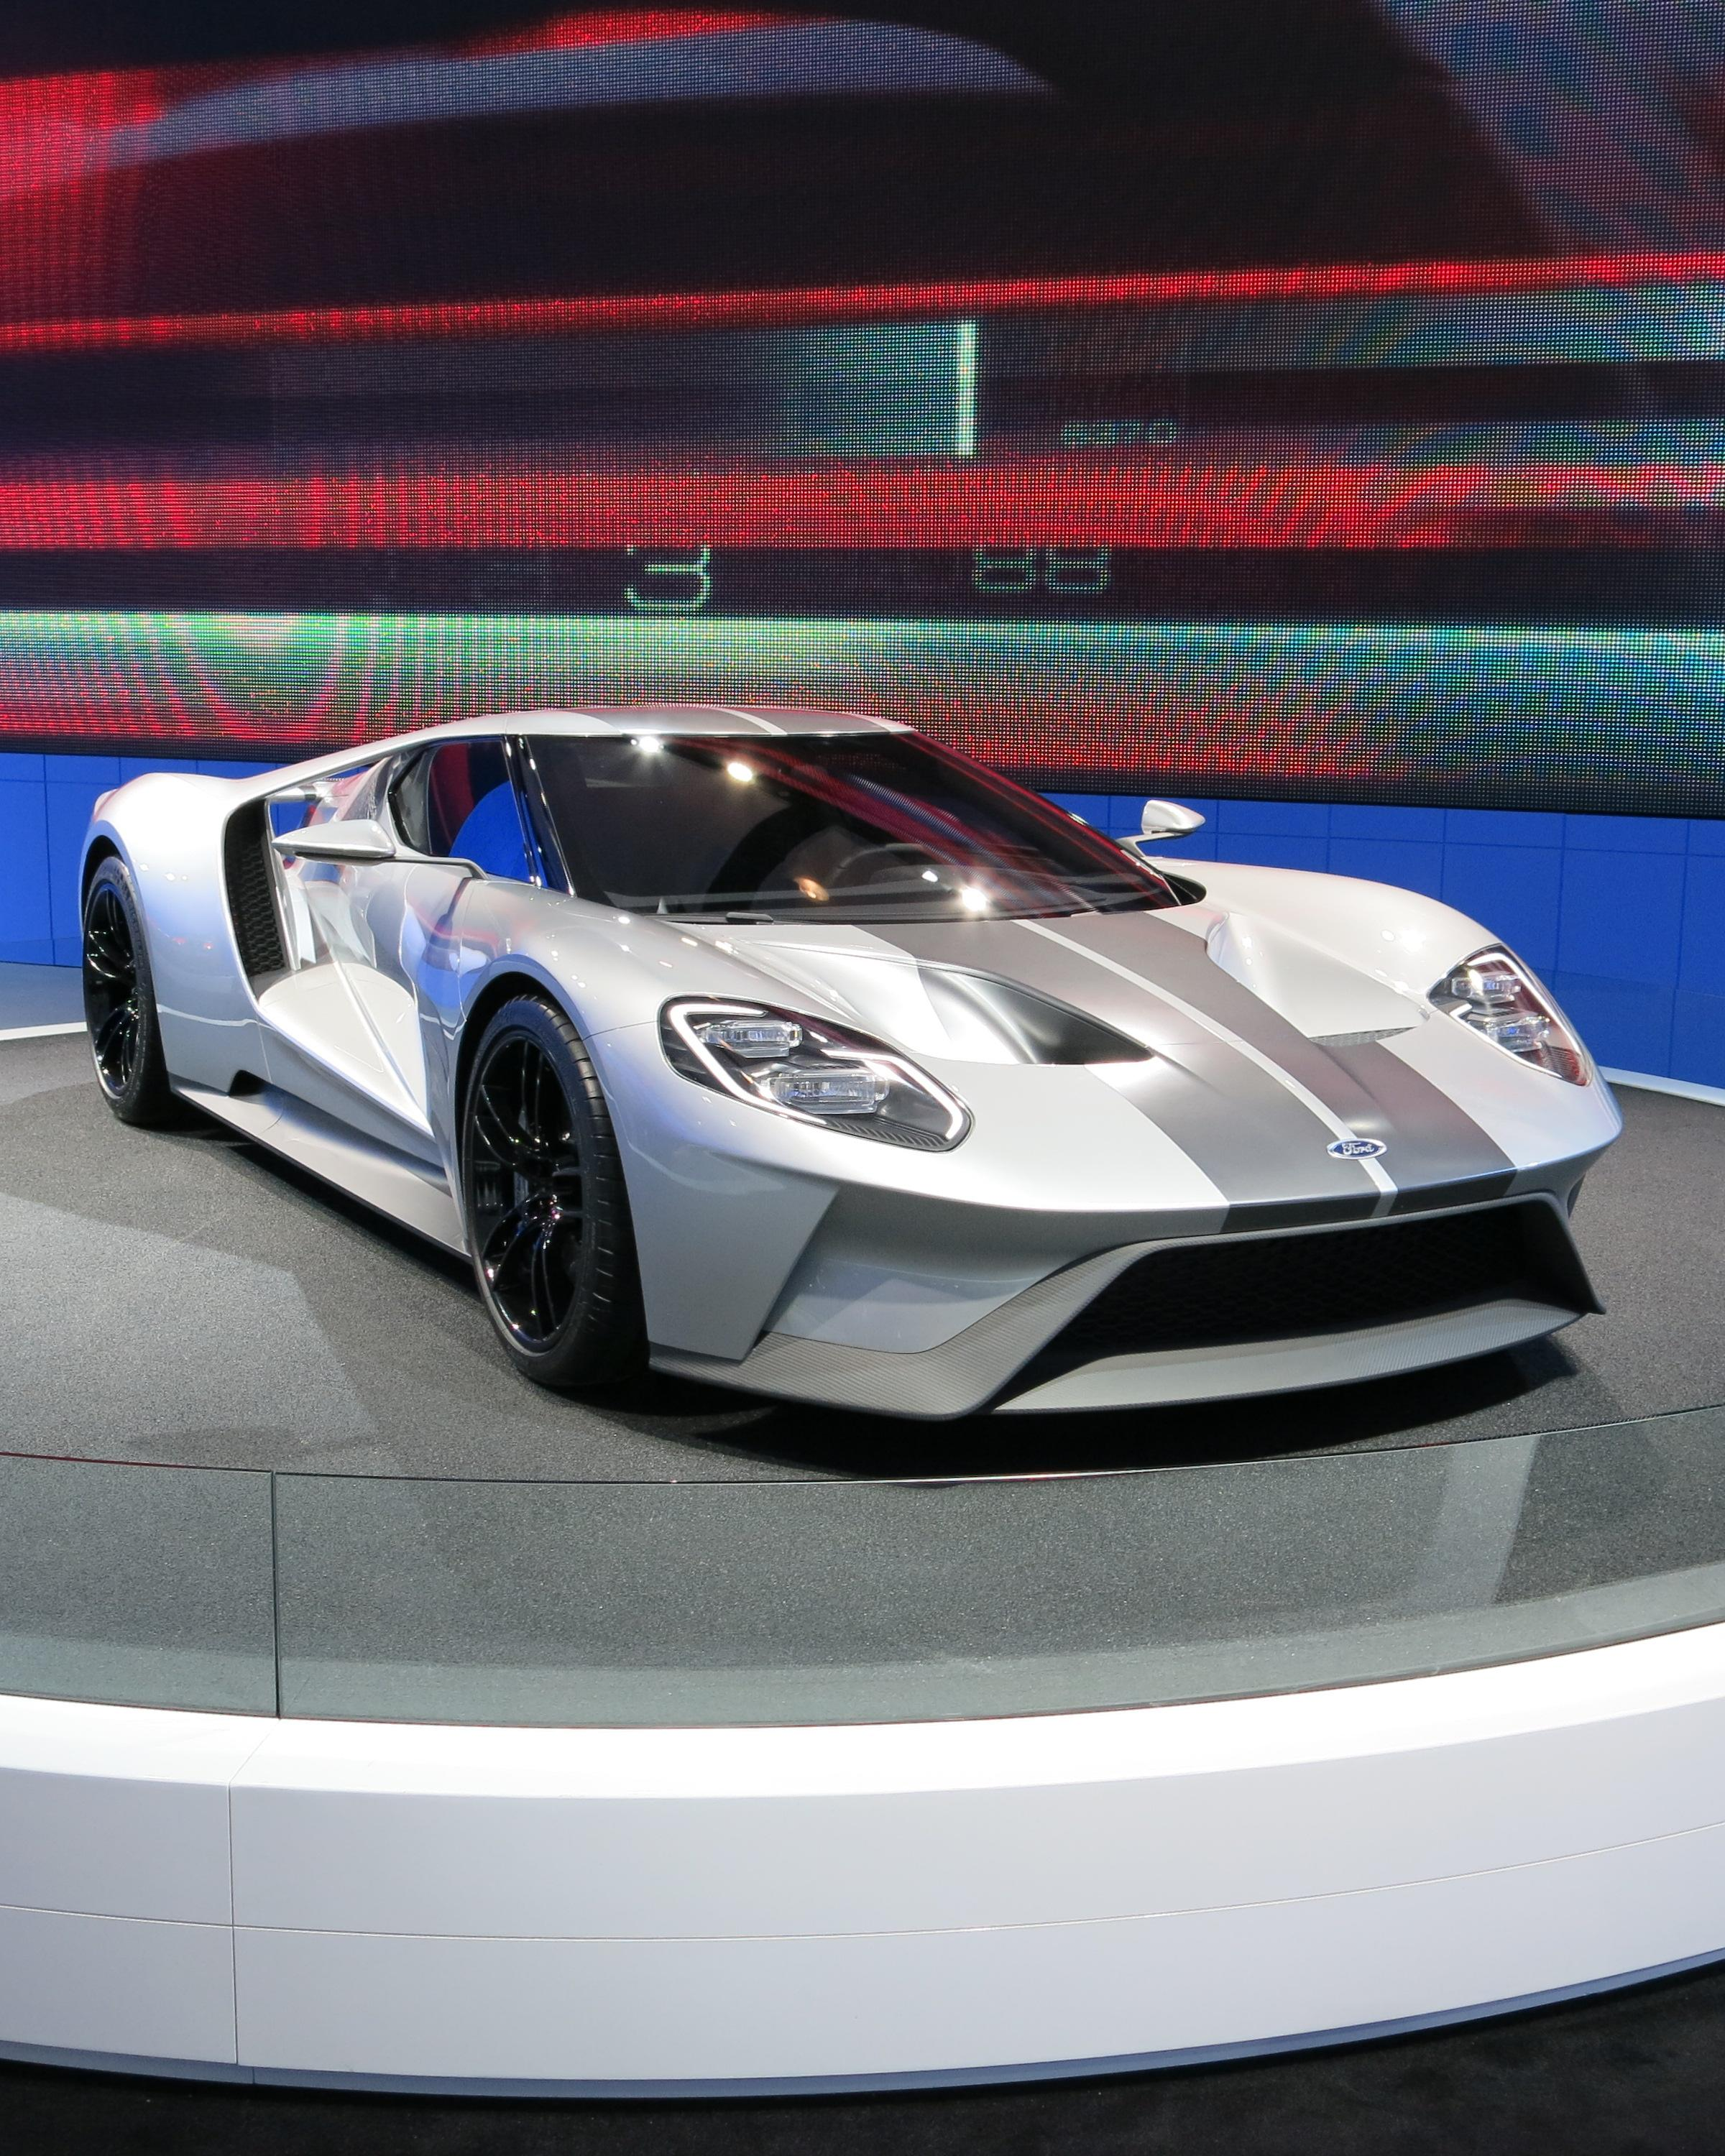 Ford GT prototypes run naked in public-road testing phase